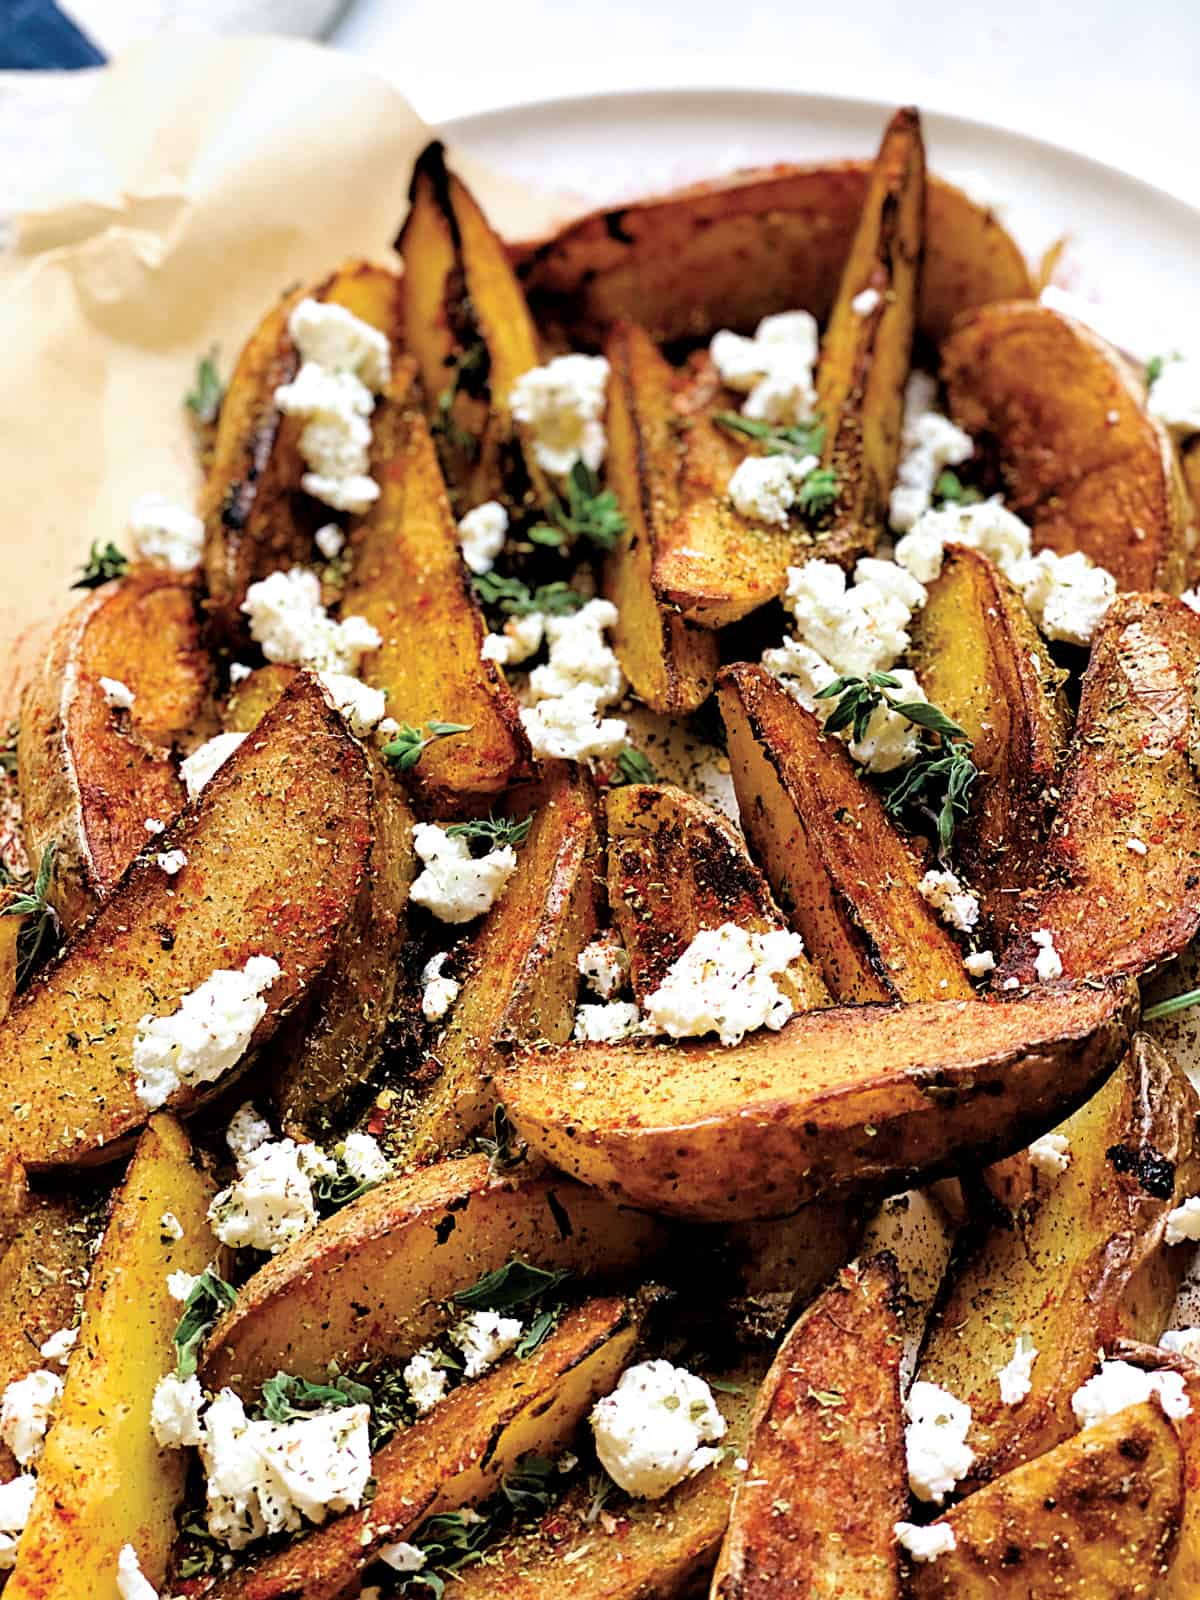 A platter with greek fries on a parchment paper with crumbled feta and herbs and seasonings.